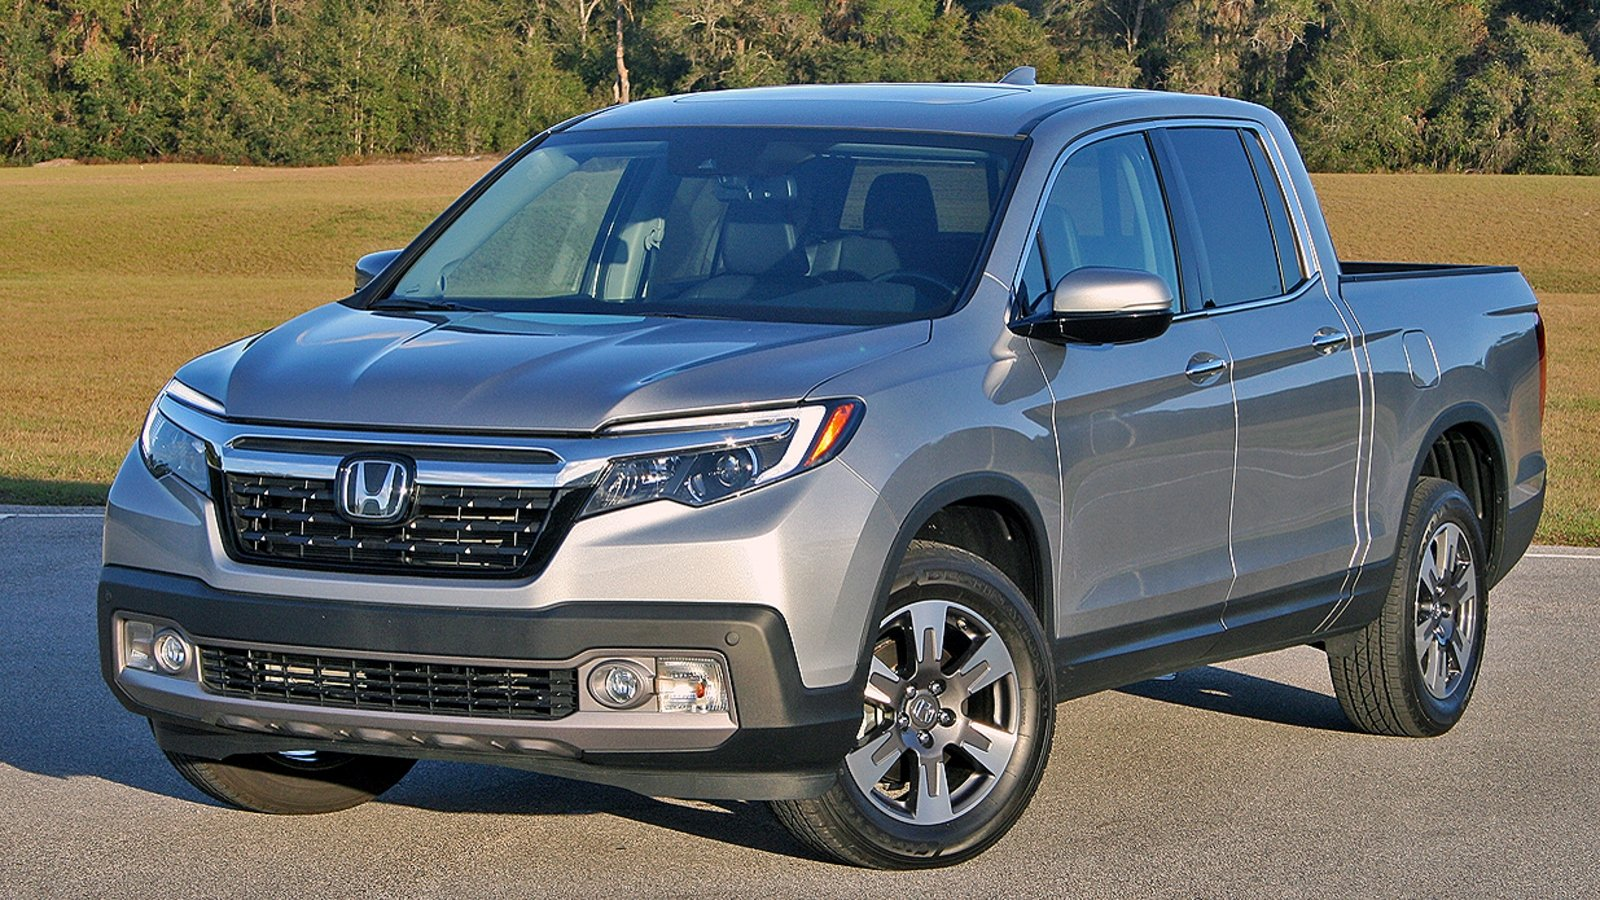 2017 Honda Ridgeline  Driven Review  Top Speed